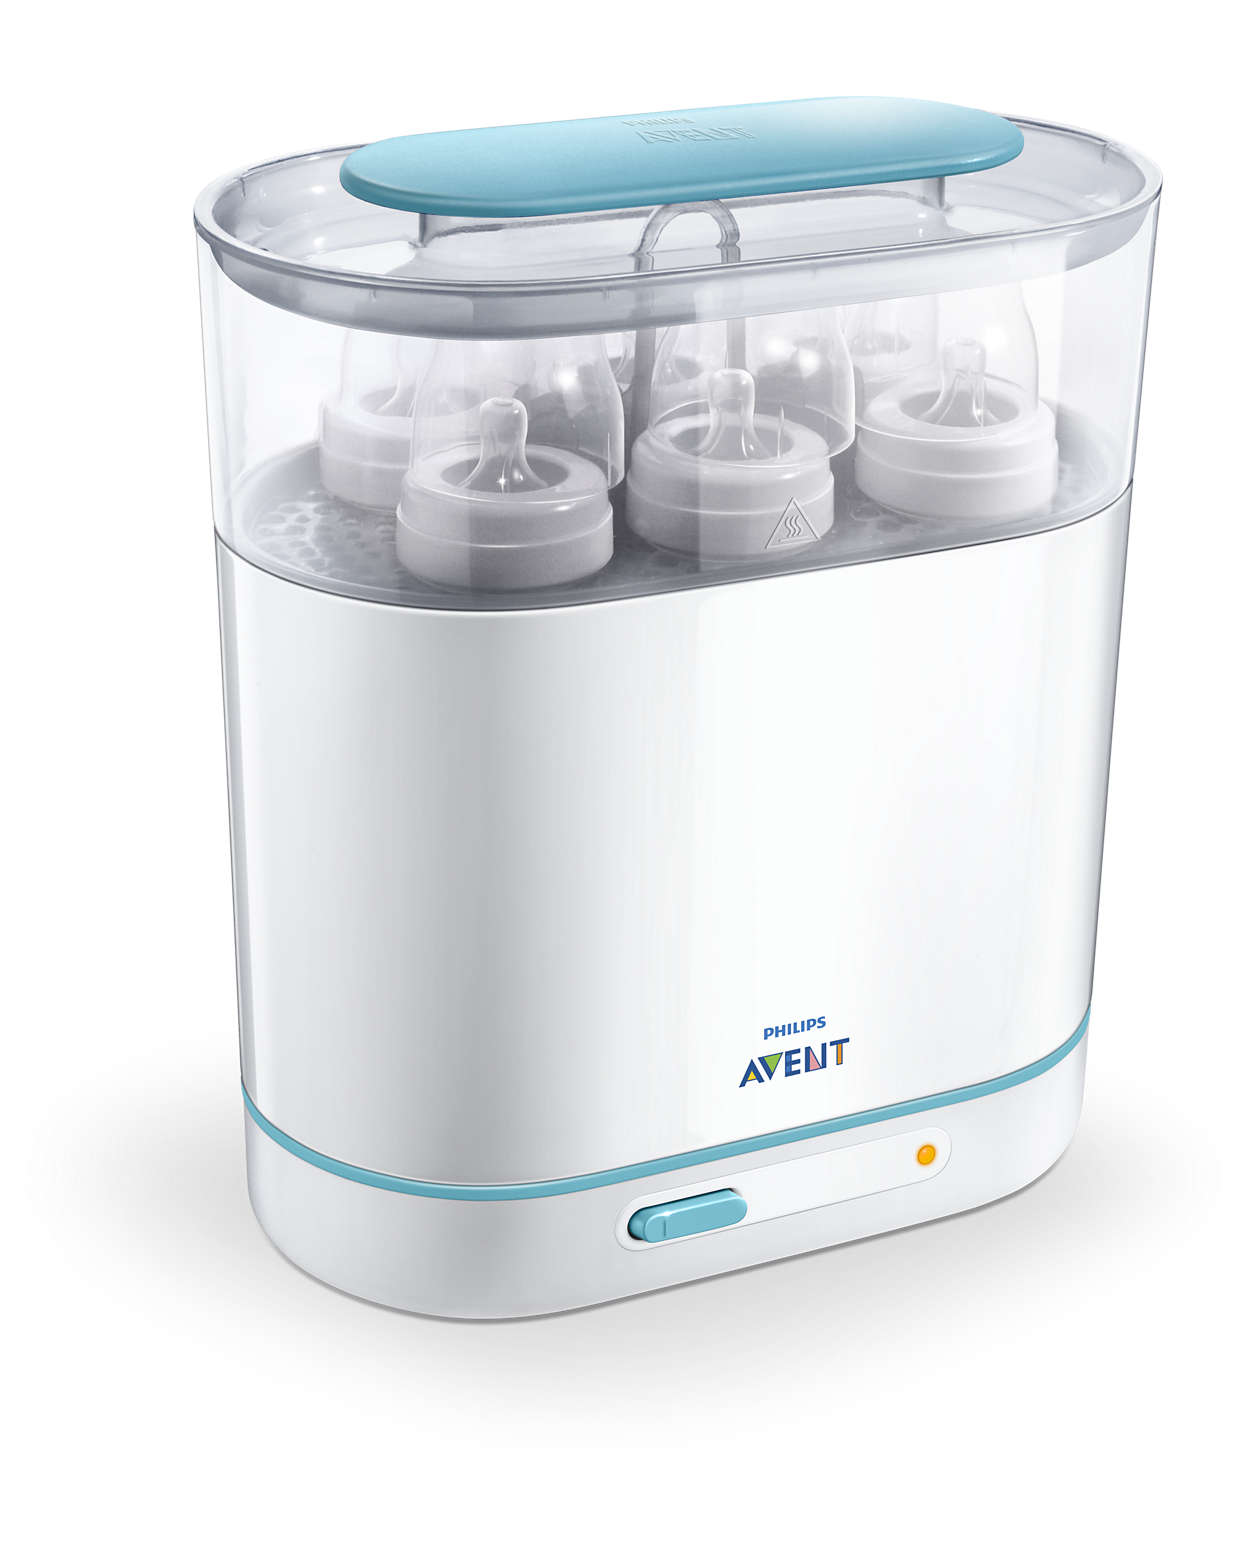 Best Sterilizers for Comotomo Bottles 2020